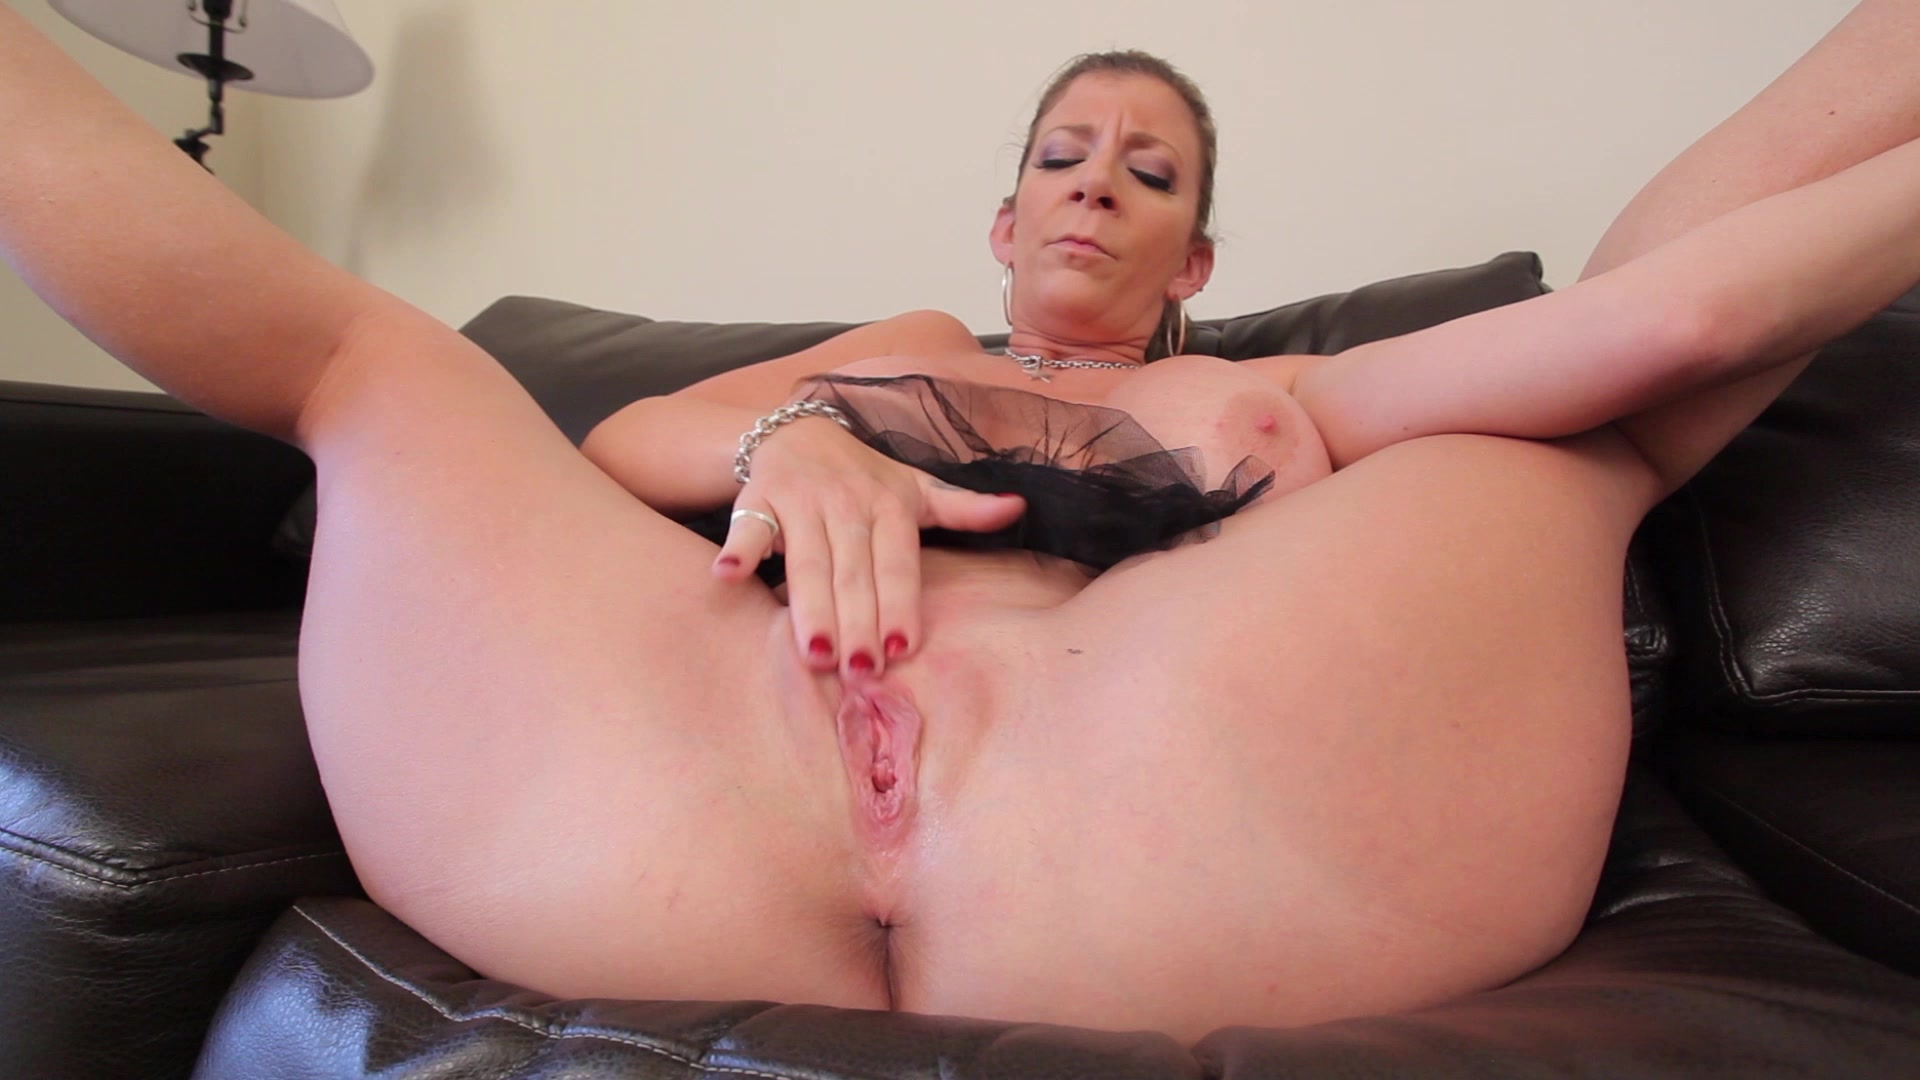 Sara jay pussy up close, milf amateur mom video galleries